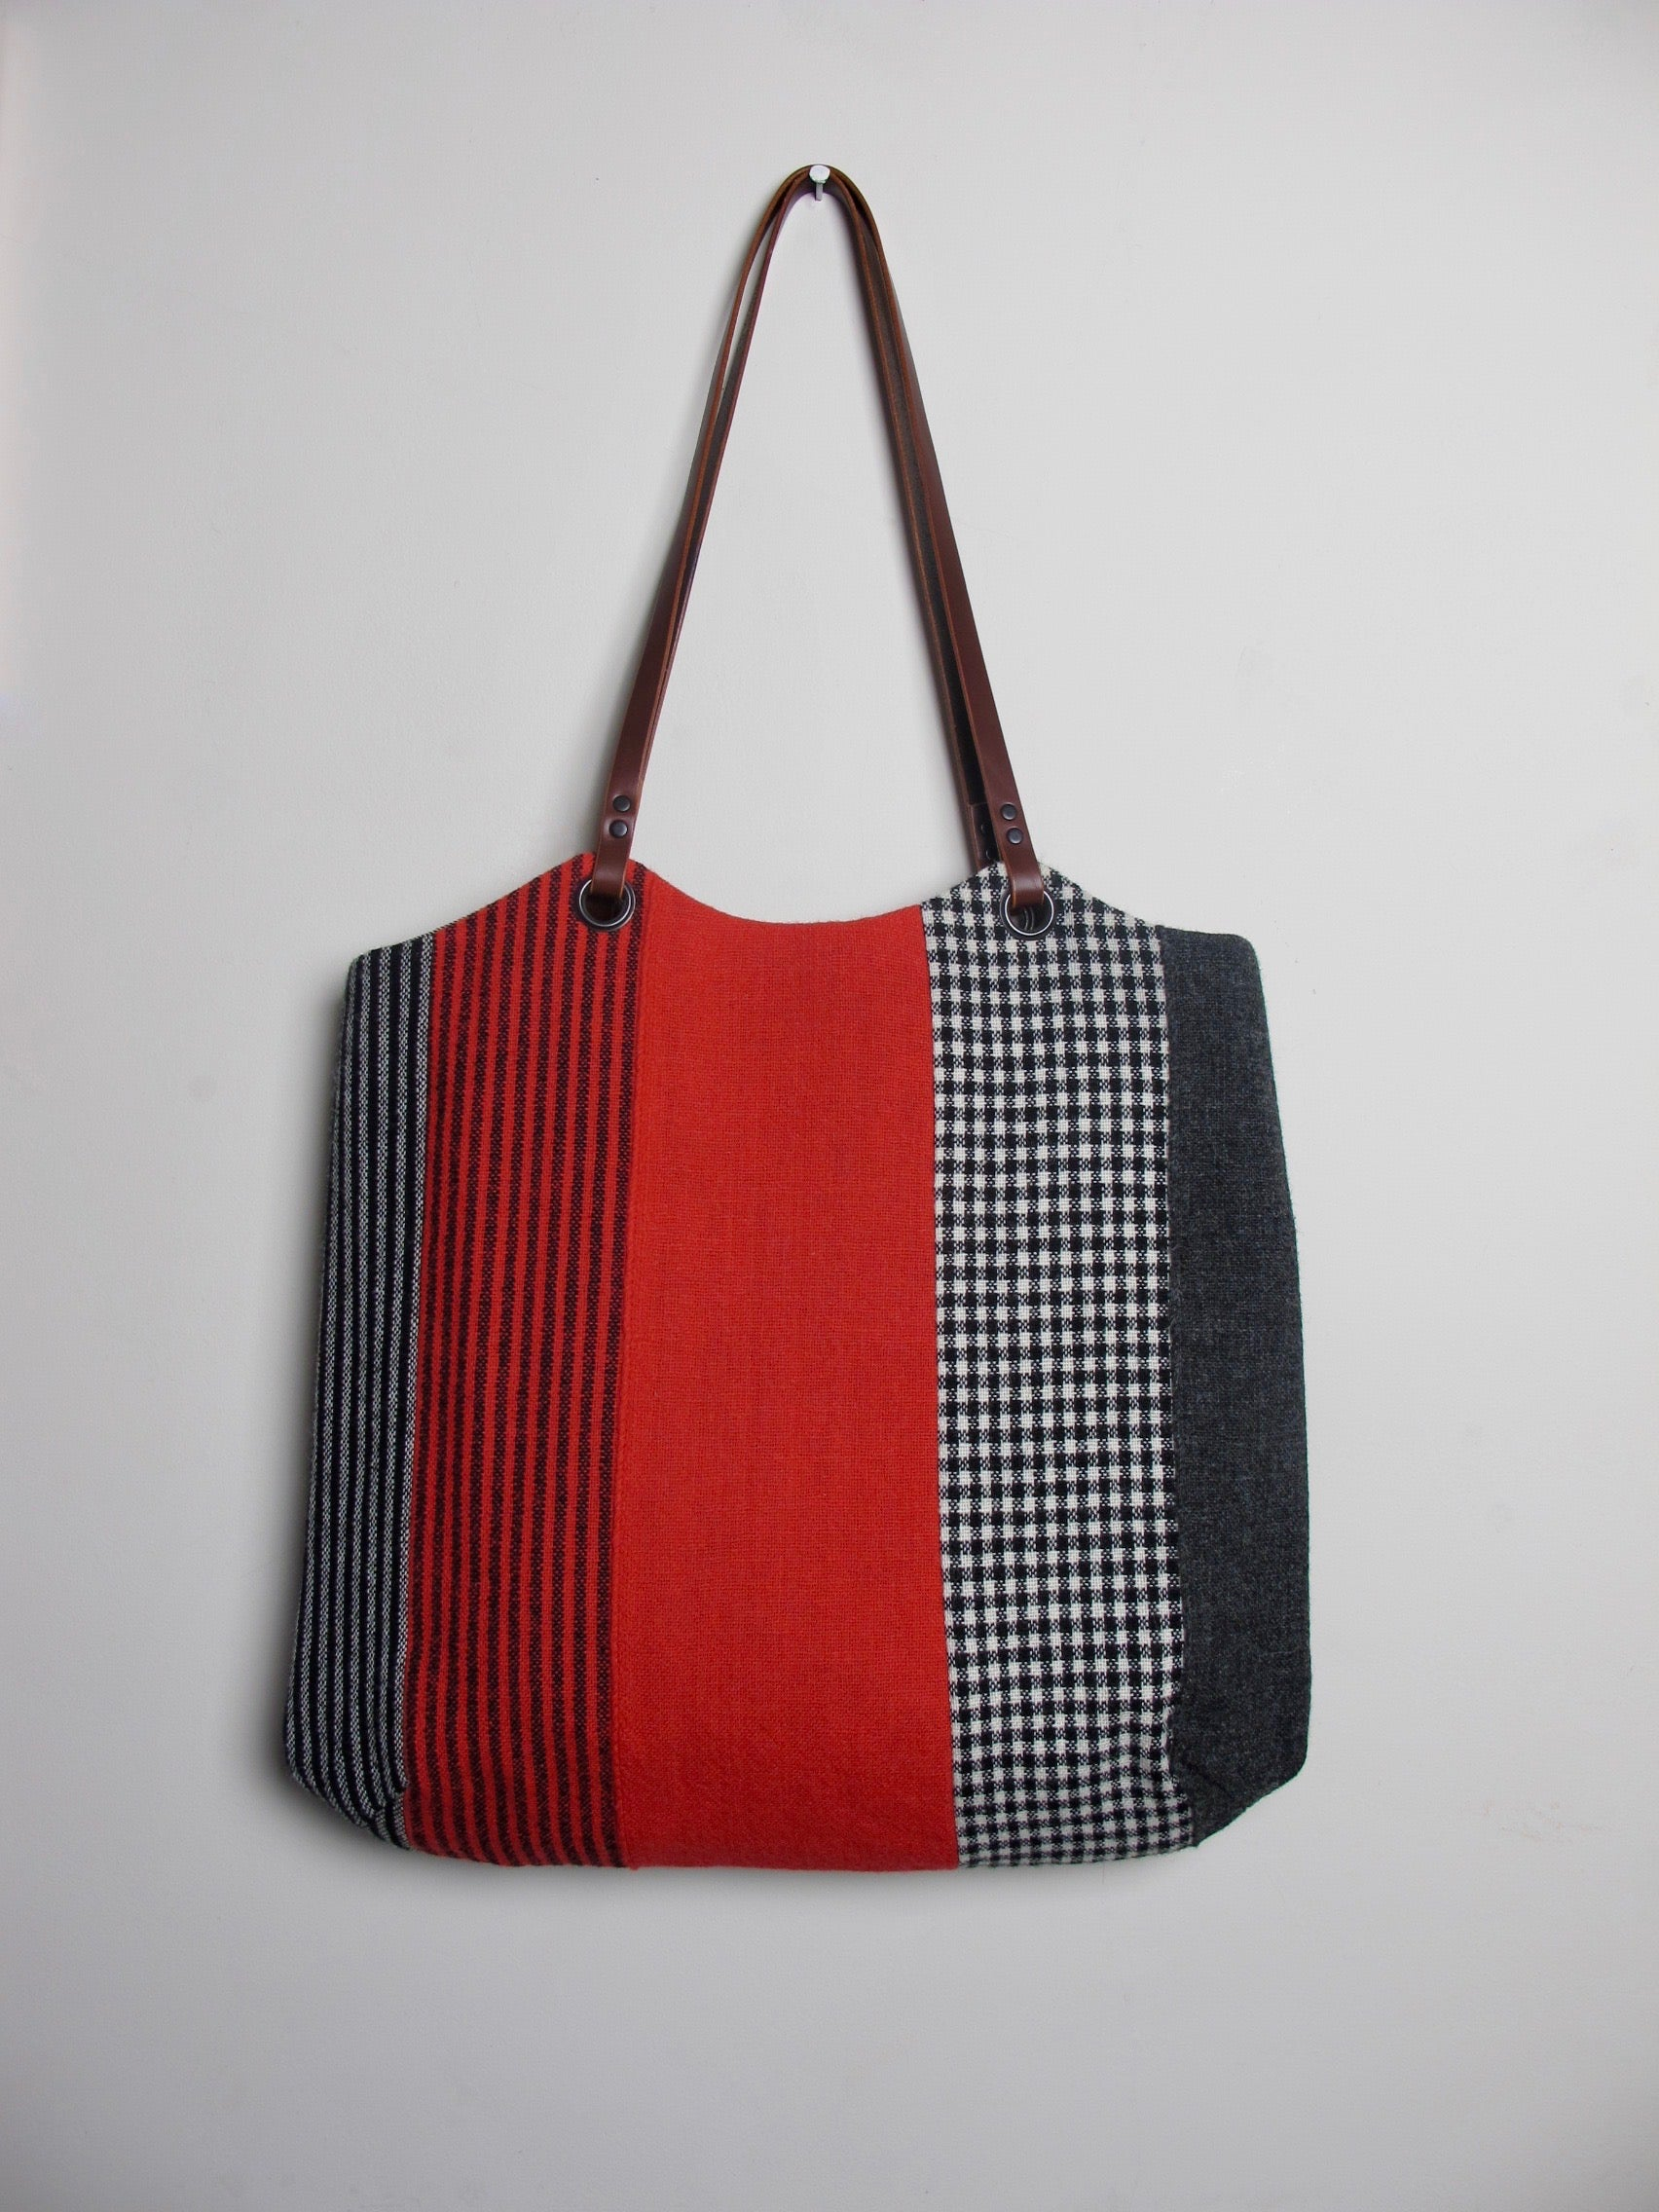 Patchwork Tote Bag - red stripe I